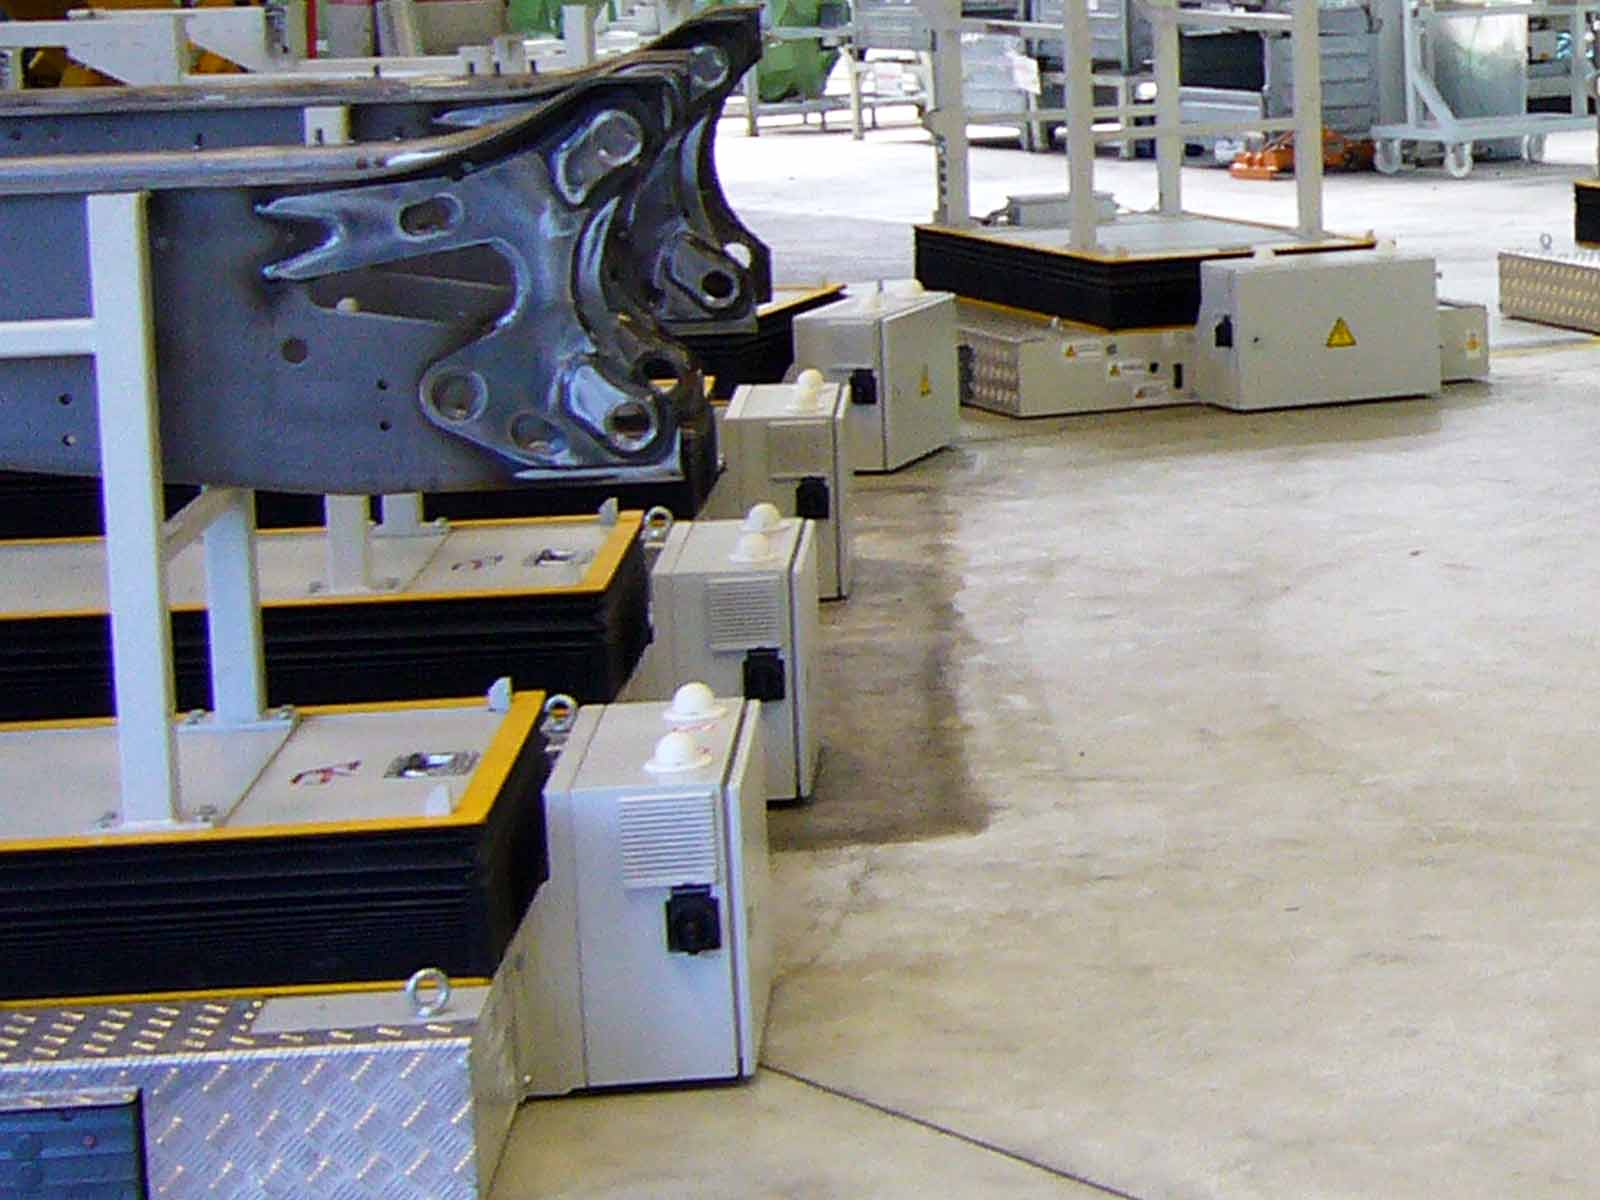 Automated Guided Vehicles (AGVs) and the radio data transmission system DATAEAGLE